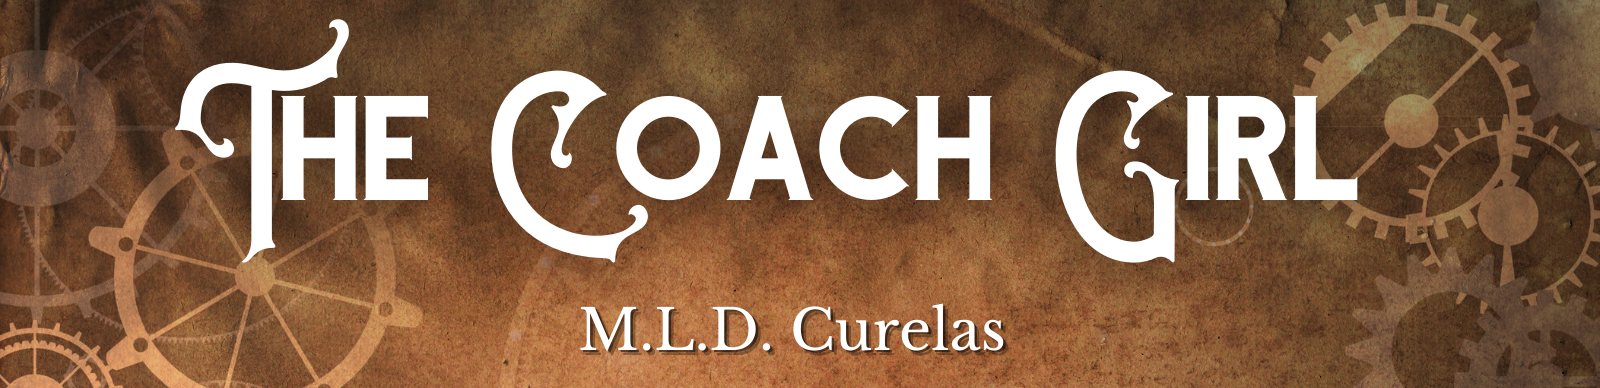 The Coach Girl by MLD Curelas